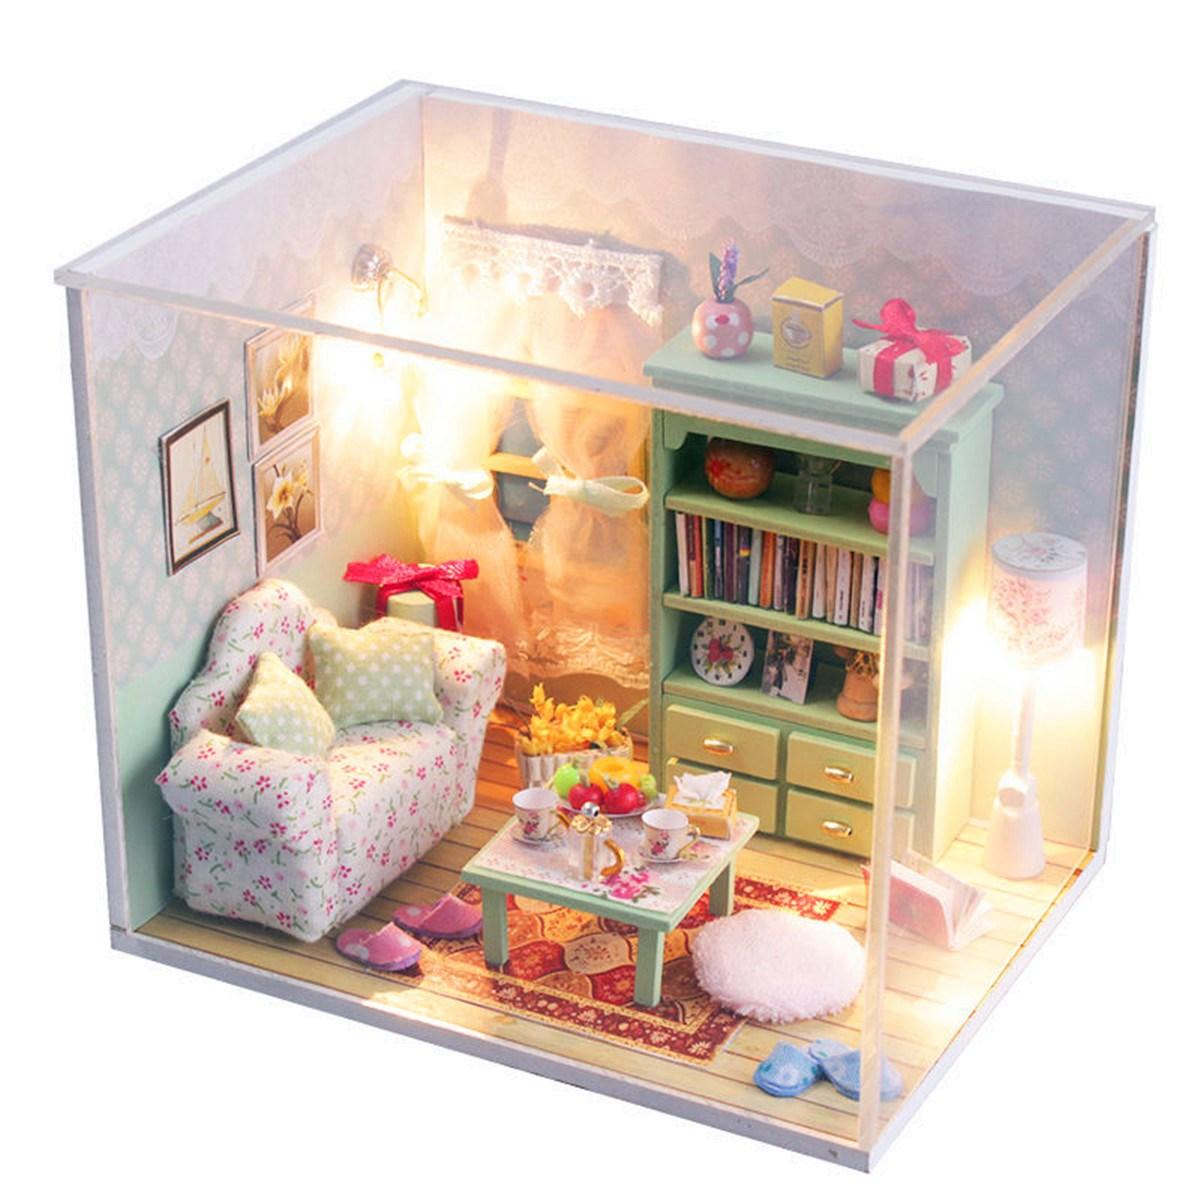 inexpensive dollhouse furniture. Hoomeda Diy Mini Dream House Wood Dollhouse Miniature With Led+Furniture+Cover Room Kits Chirdmas Gift For Kids Furniture Toddlers Inexpensive L